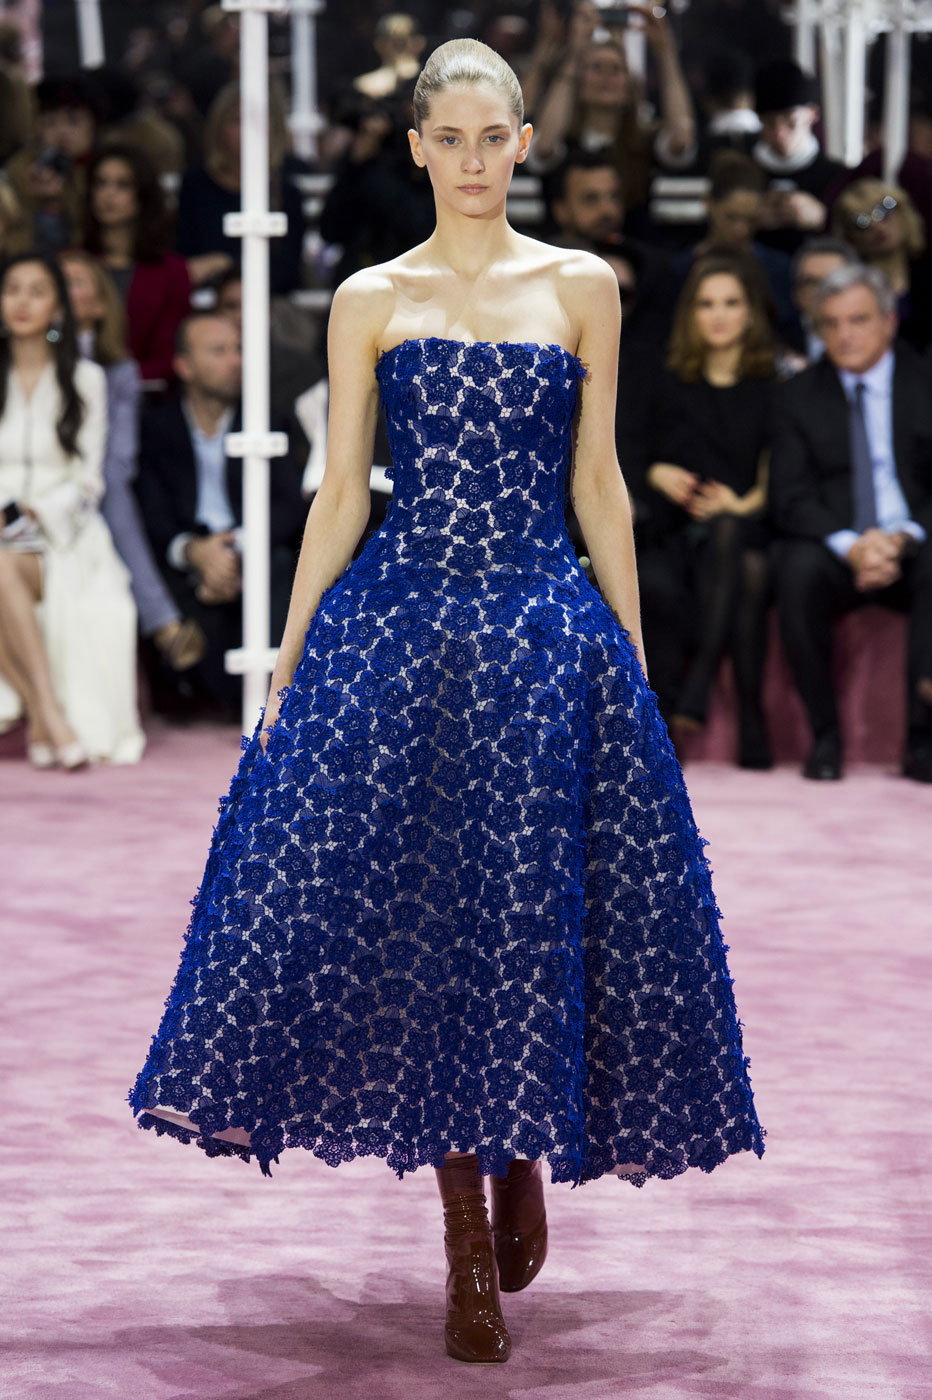 Christian-Dior-fashion-runway-show-haute-couture-paris-spring-summer-2015-the-impression-074